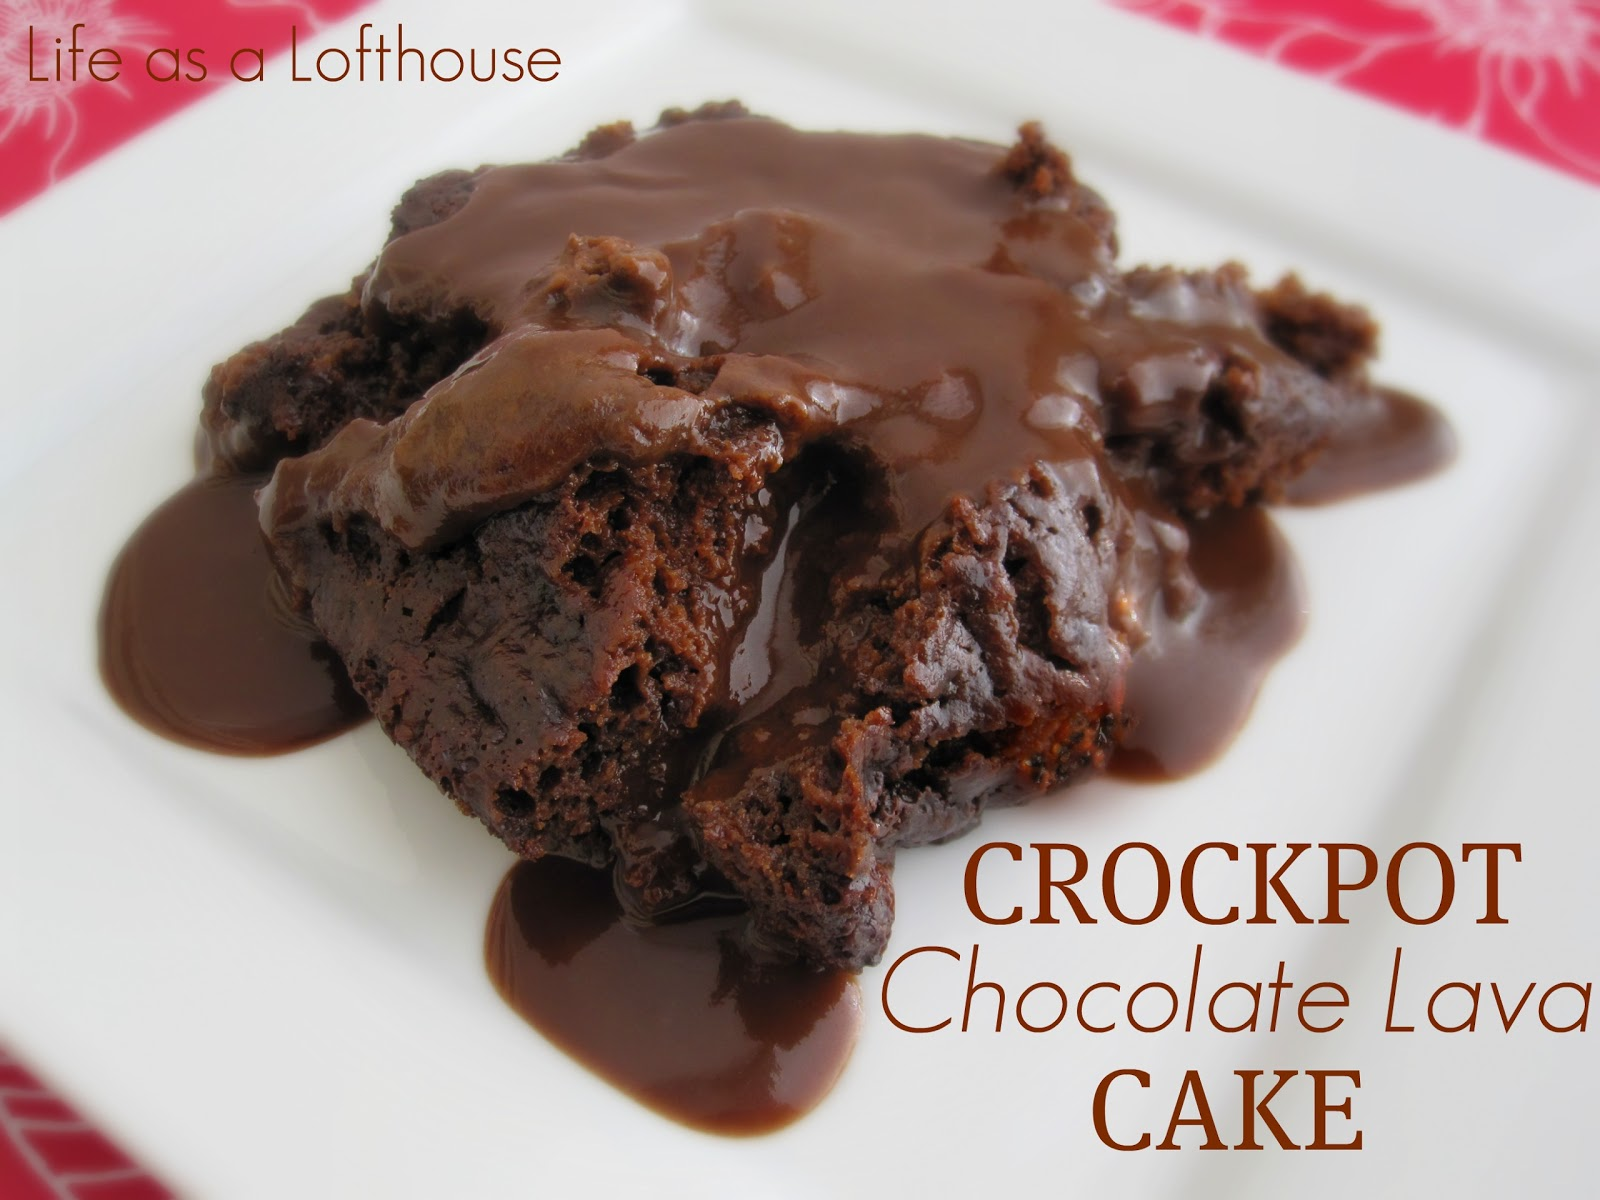 Crockpot Chocolate Lava Cake - Life In The Lofthouse